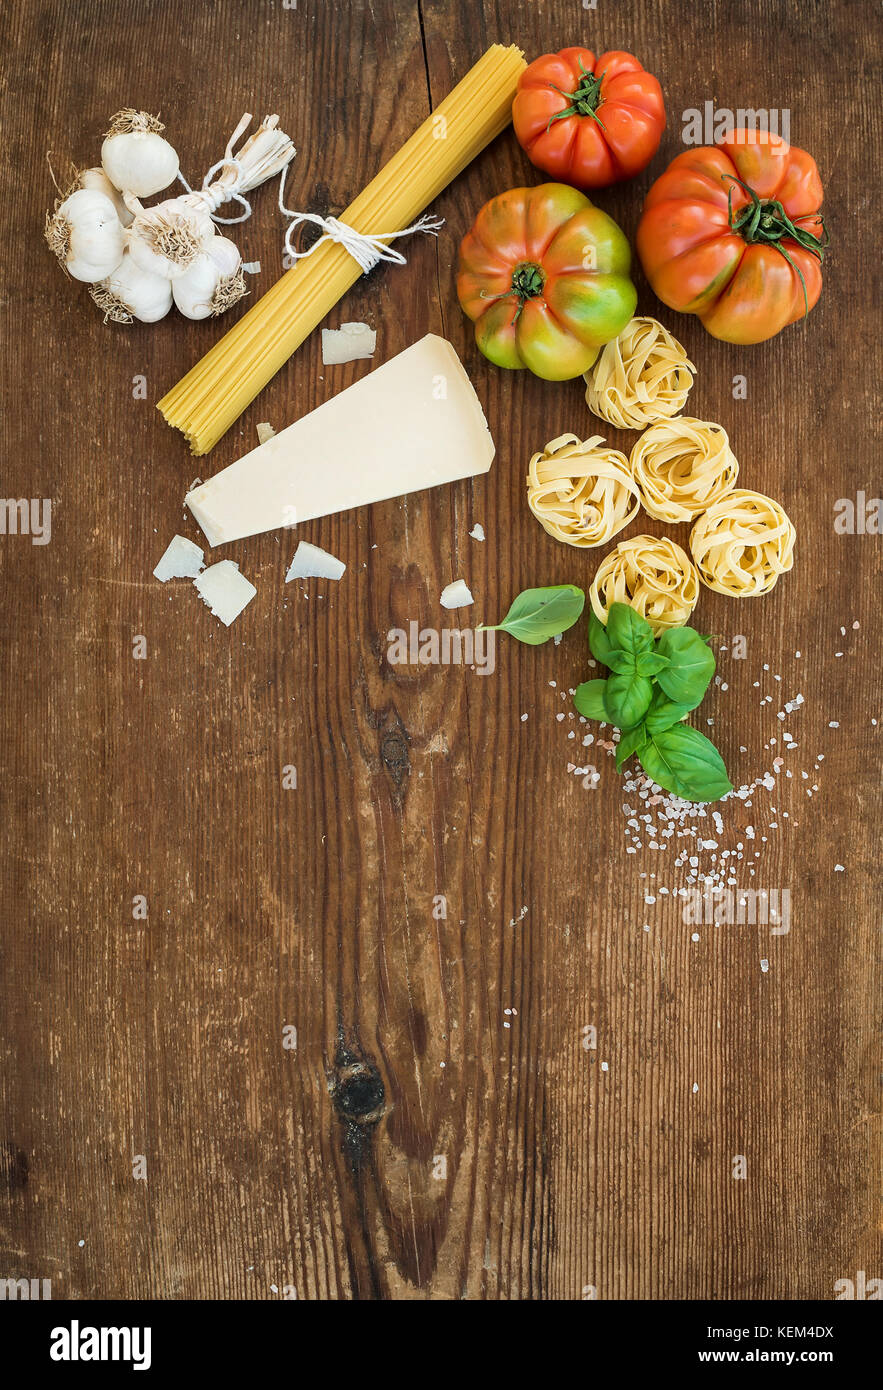 Ingredients for cooking pasta. Spaghetti, tagliatelle, garlic, Parmesan cheese, tomatoes and fresh basil on rustic - Stock Image